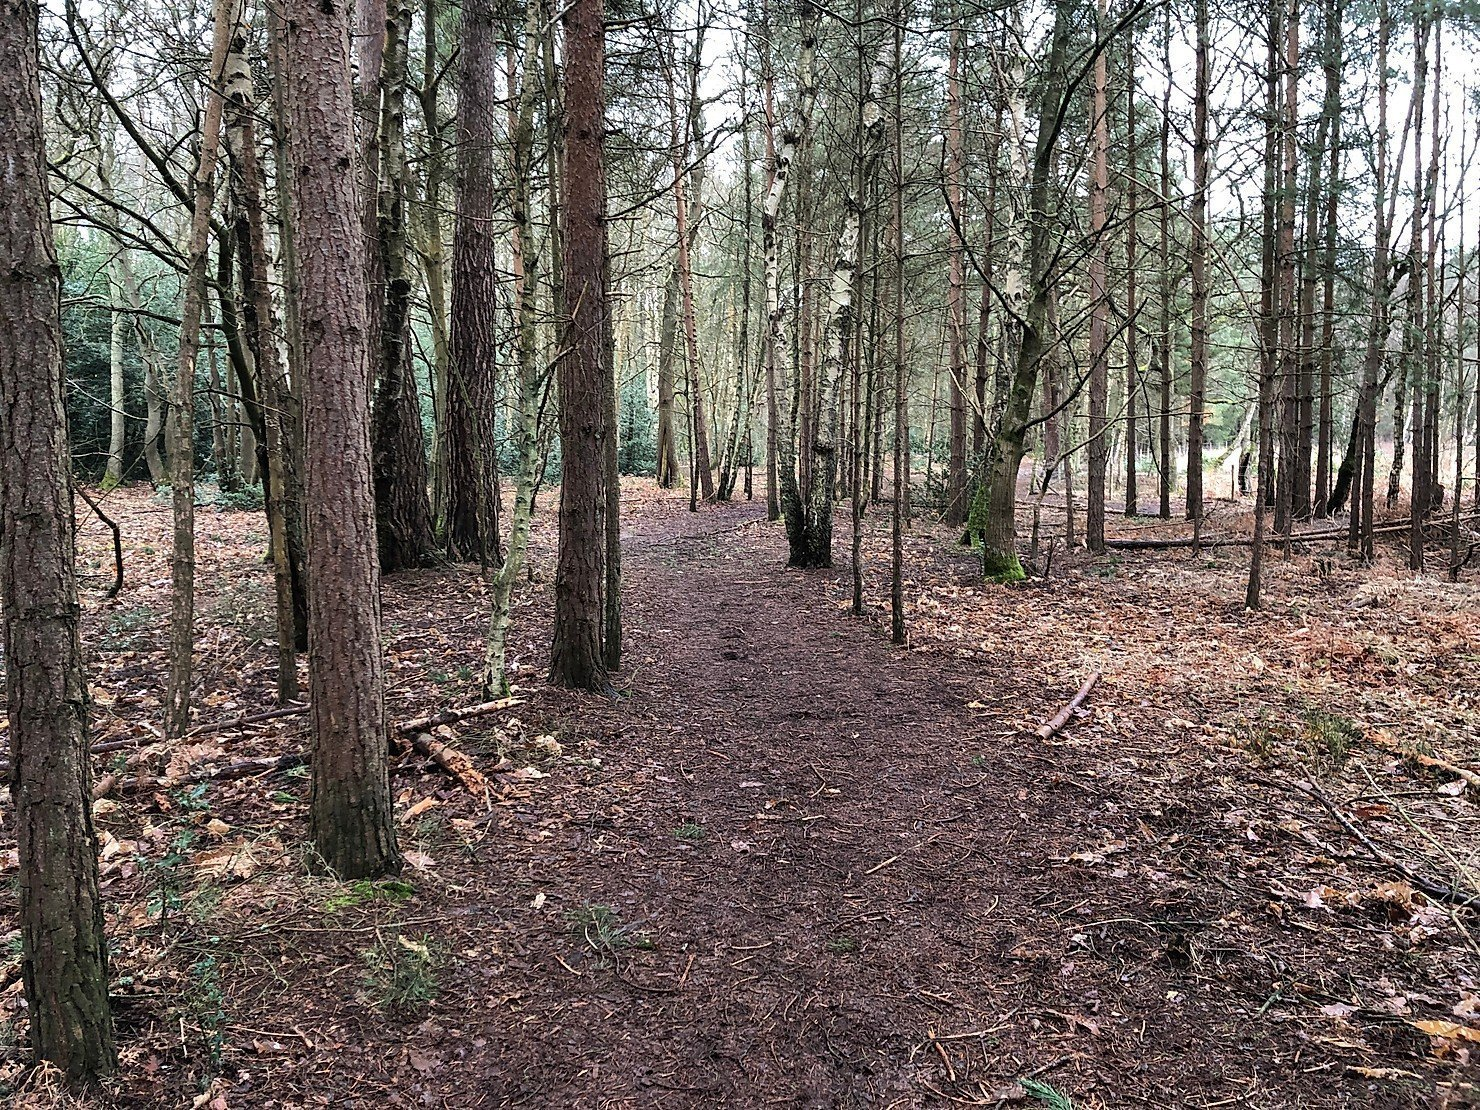 Wildmoor woods, Crowthorne